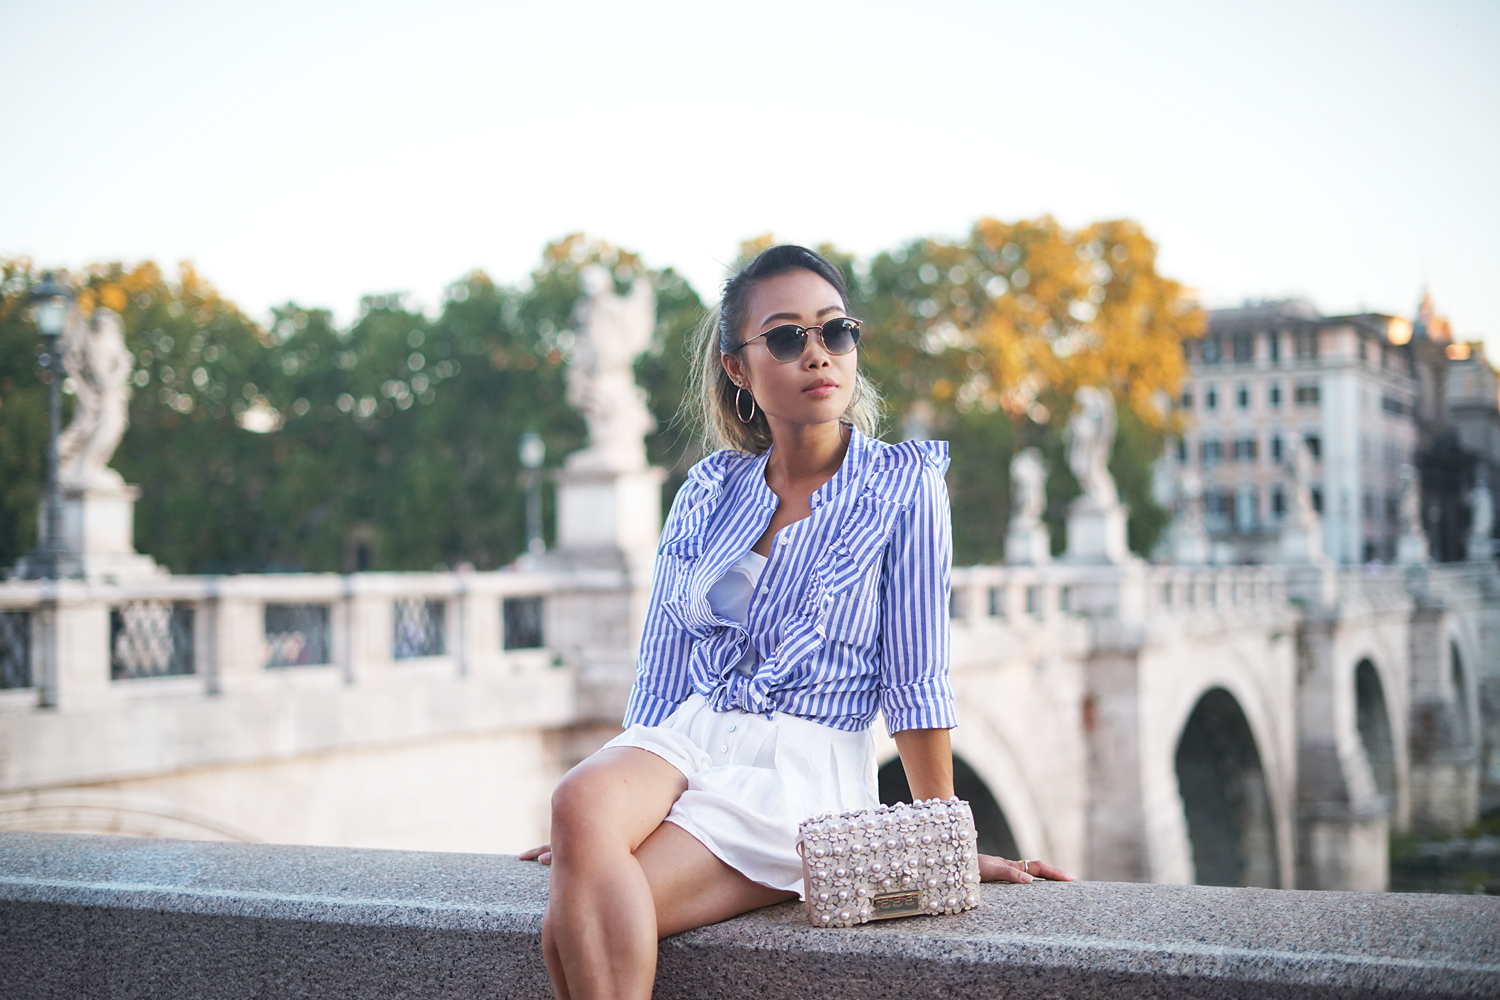 01rome-pontesantangelo-bridge-travel-ootd